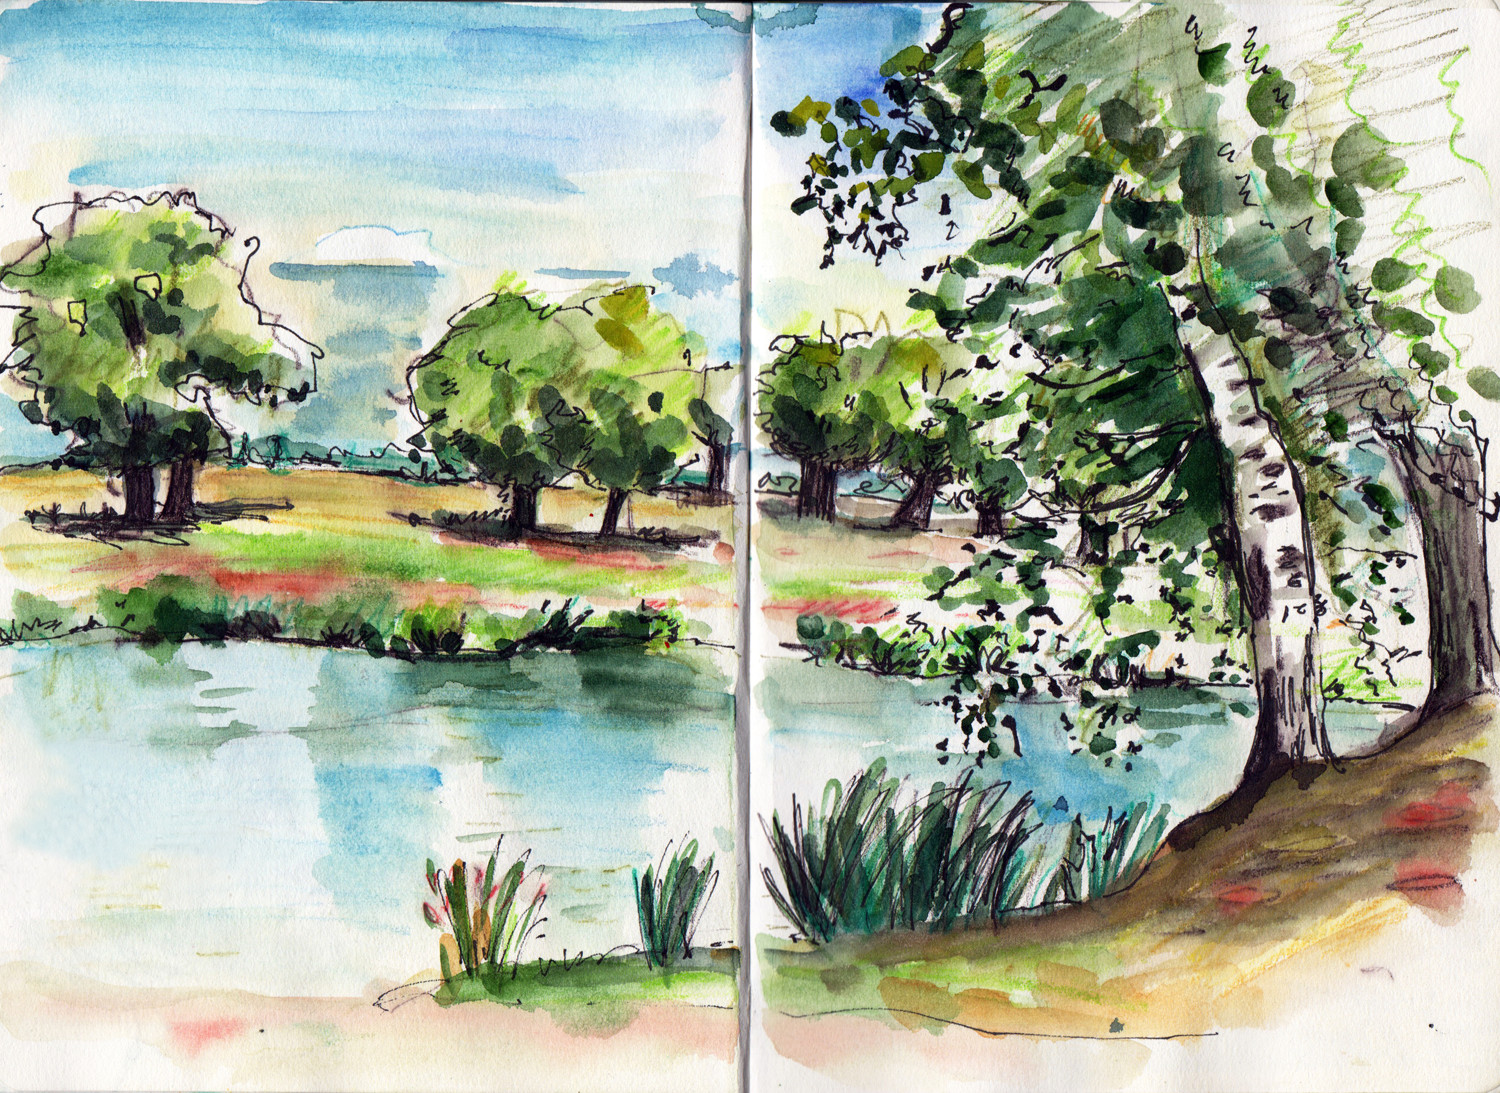 Sketching water by Sophie Peanut - Lac de St Hilaire France